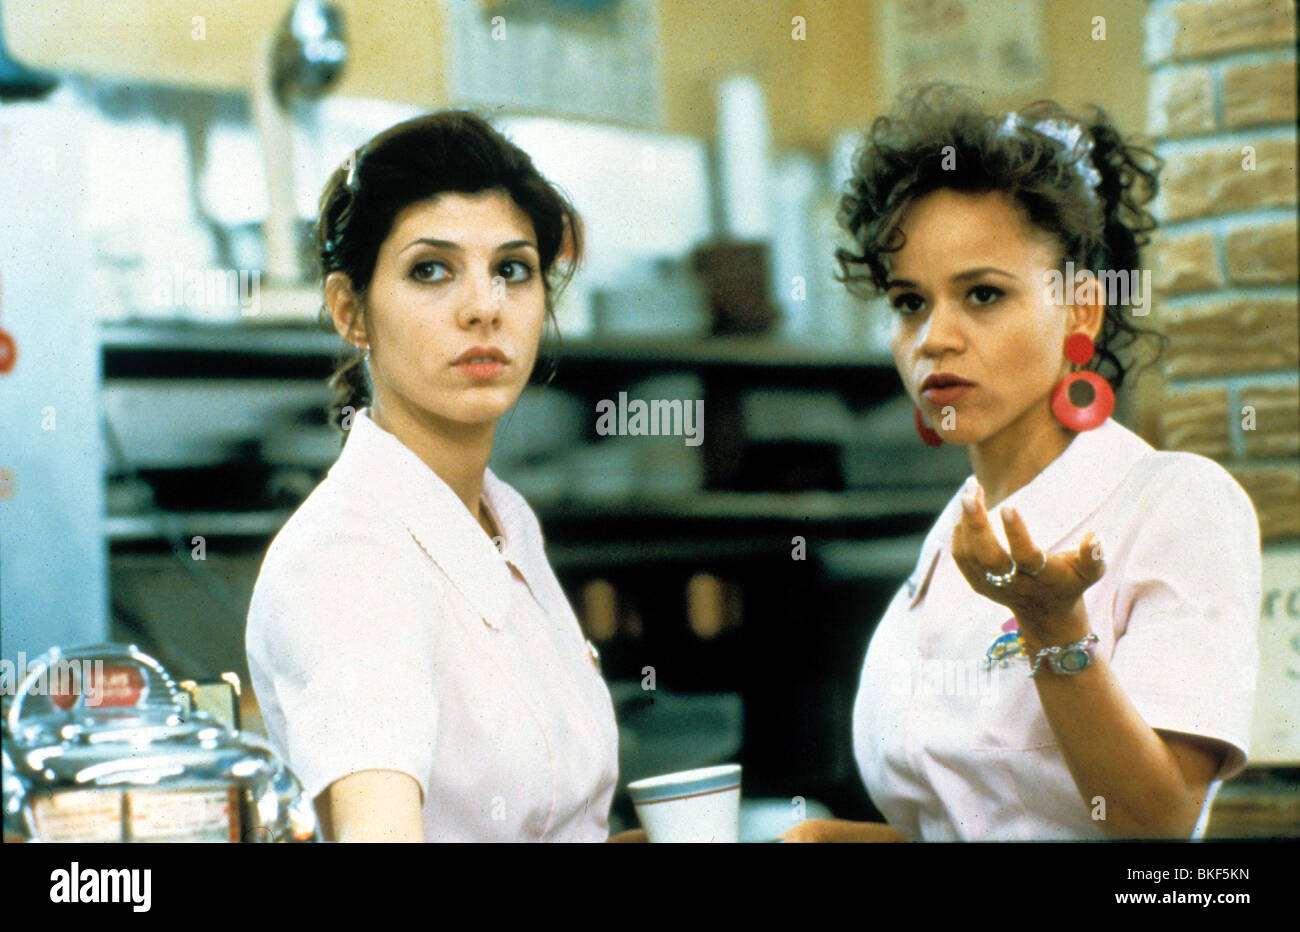 UNTAMED HEART (1993) MARISA TOMEI, ROSIE PEREZ UTH 069 H - Stock Image